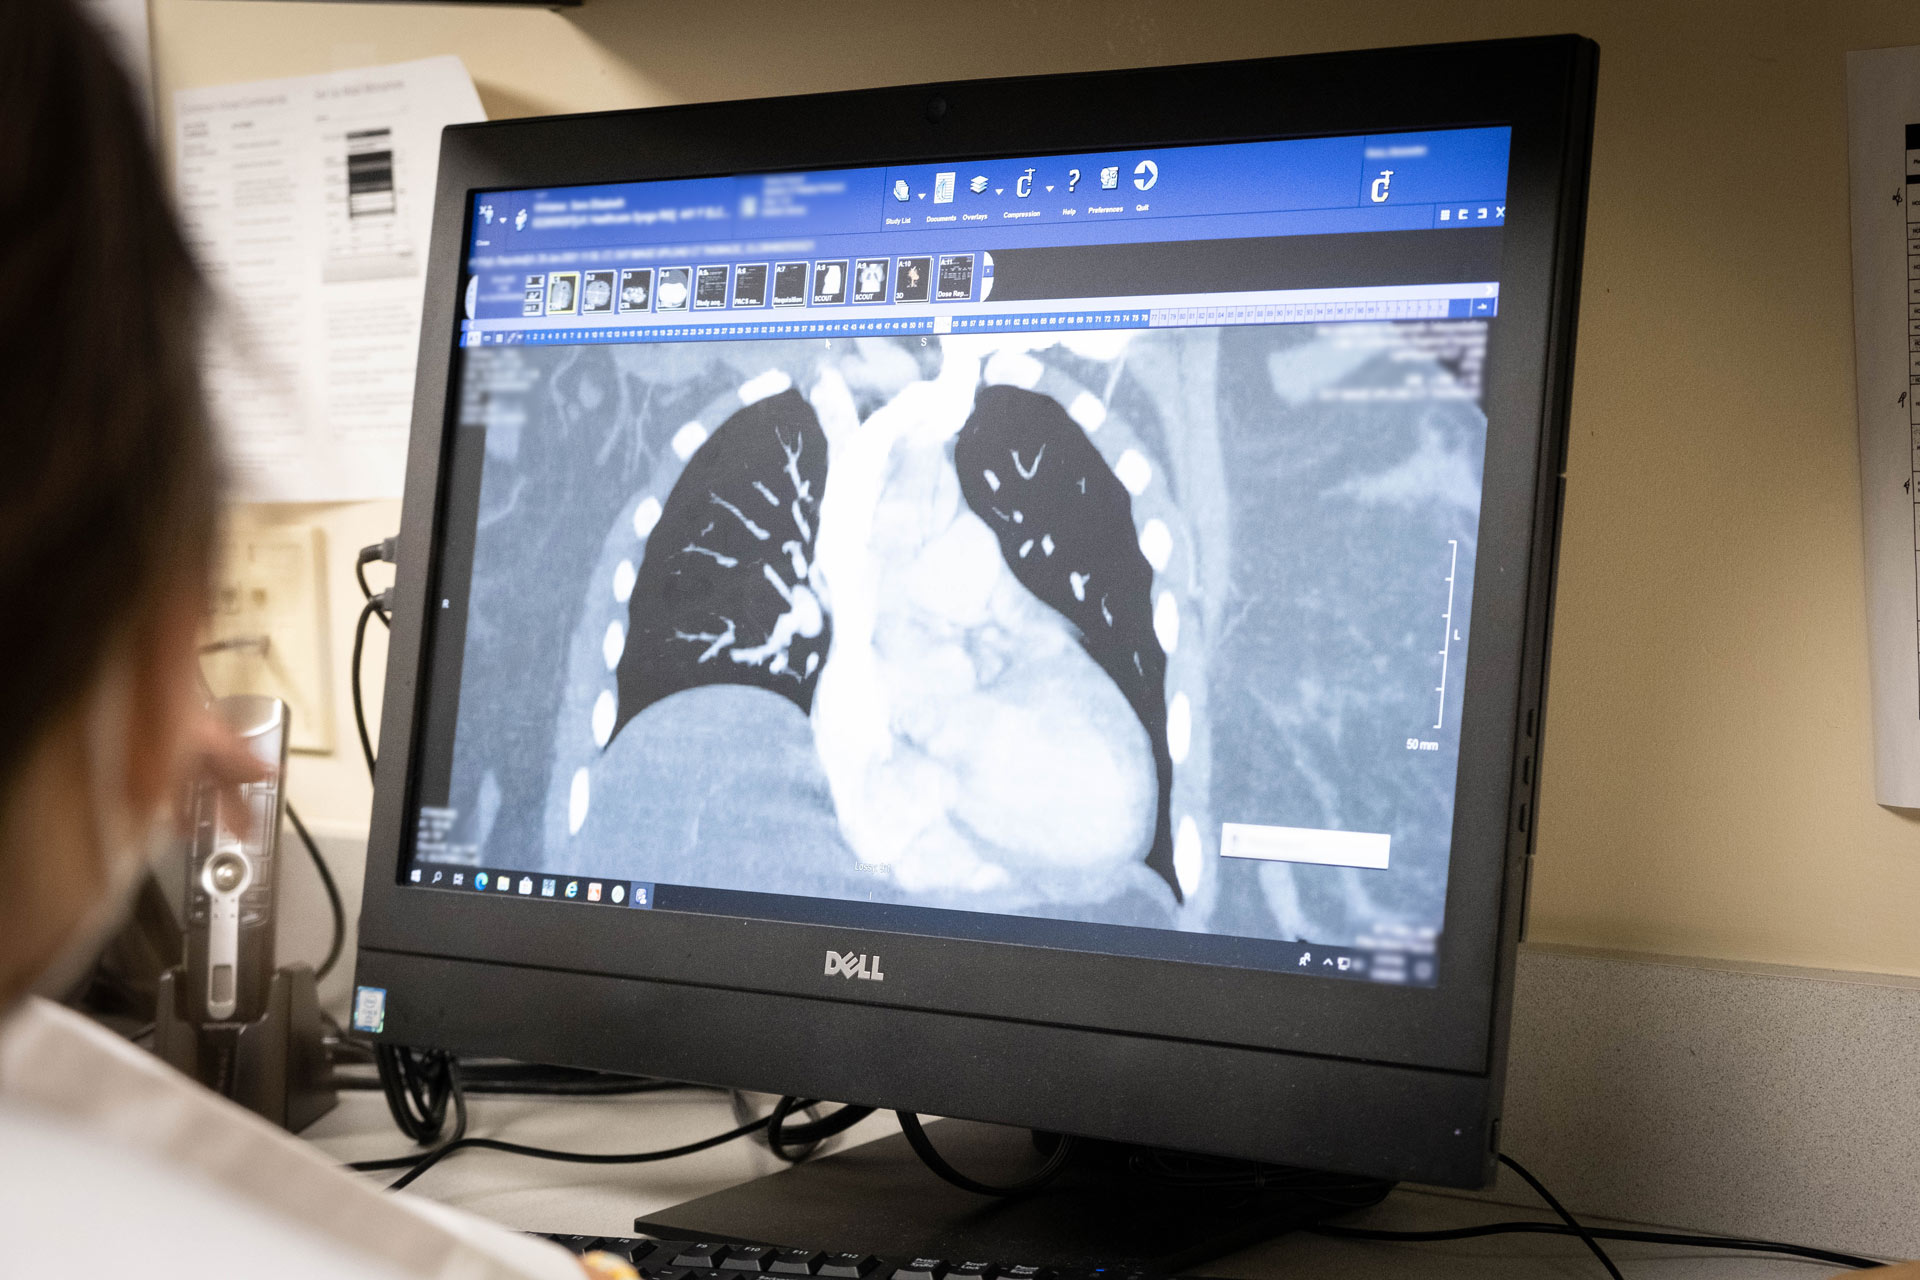 The computer screen displays the scan of a patient's heart as it is being monitored.